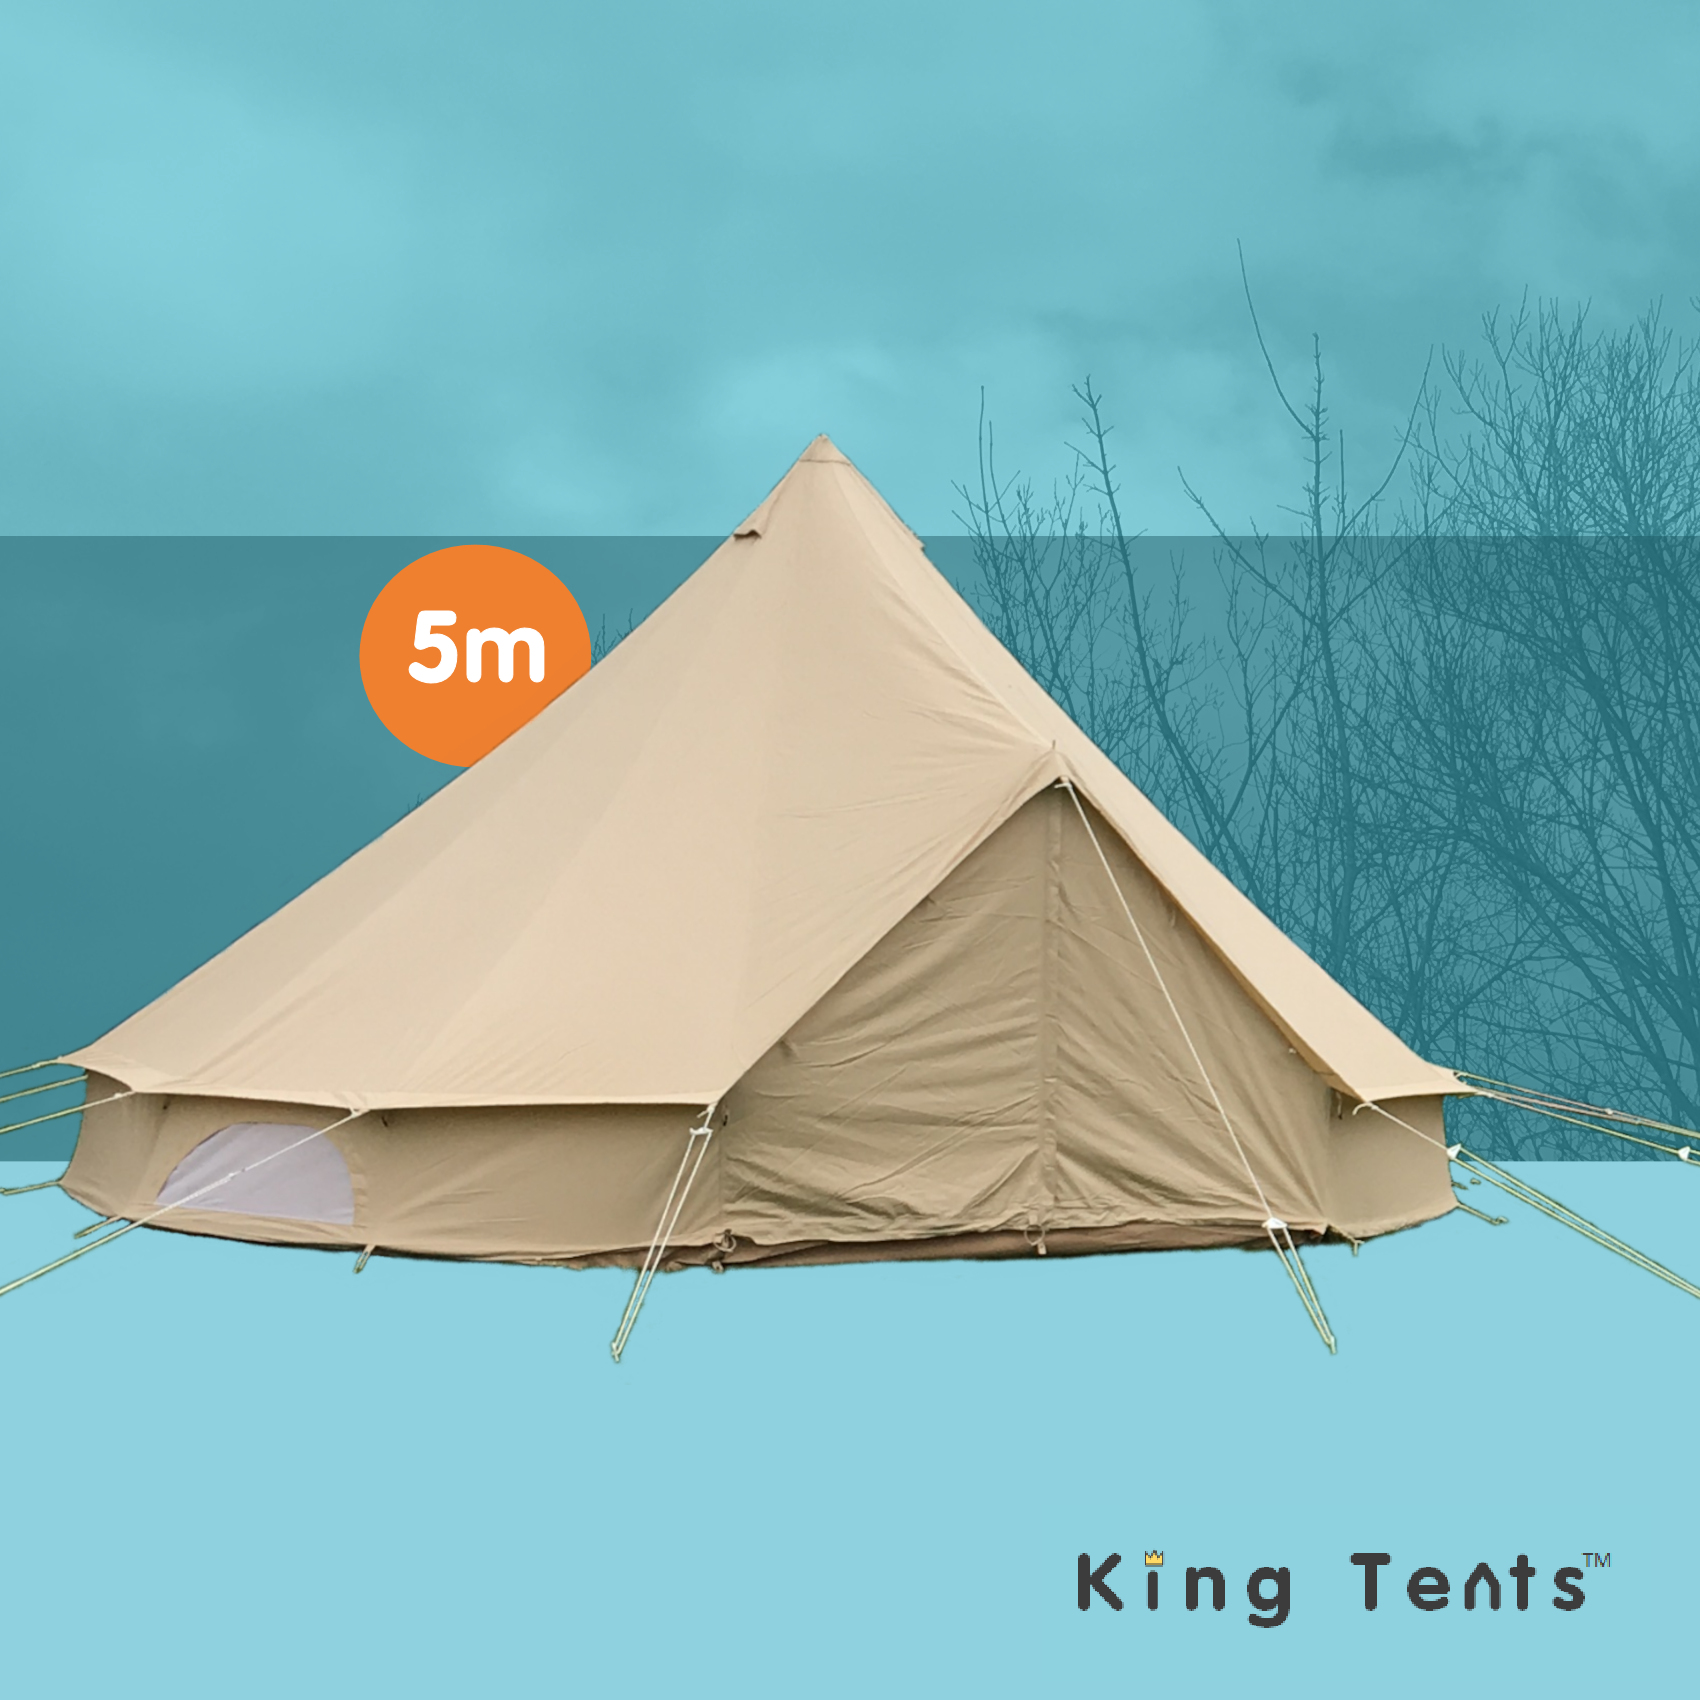 Details about Heavy Duty 5m Canvas Bell Tent with mesh door - Gl&ing equipment by King Tents  sc 1 st  eBay & Heavy Duty 5m Canvas Bell Tent with mesh door - Glamping equipment ...